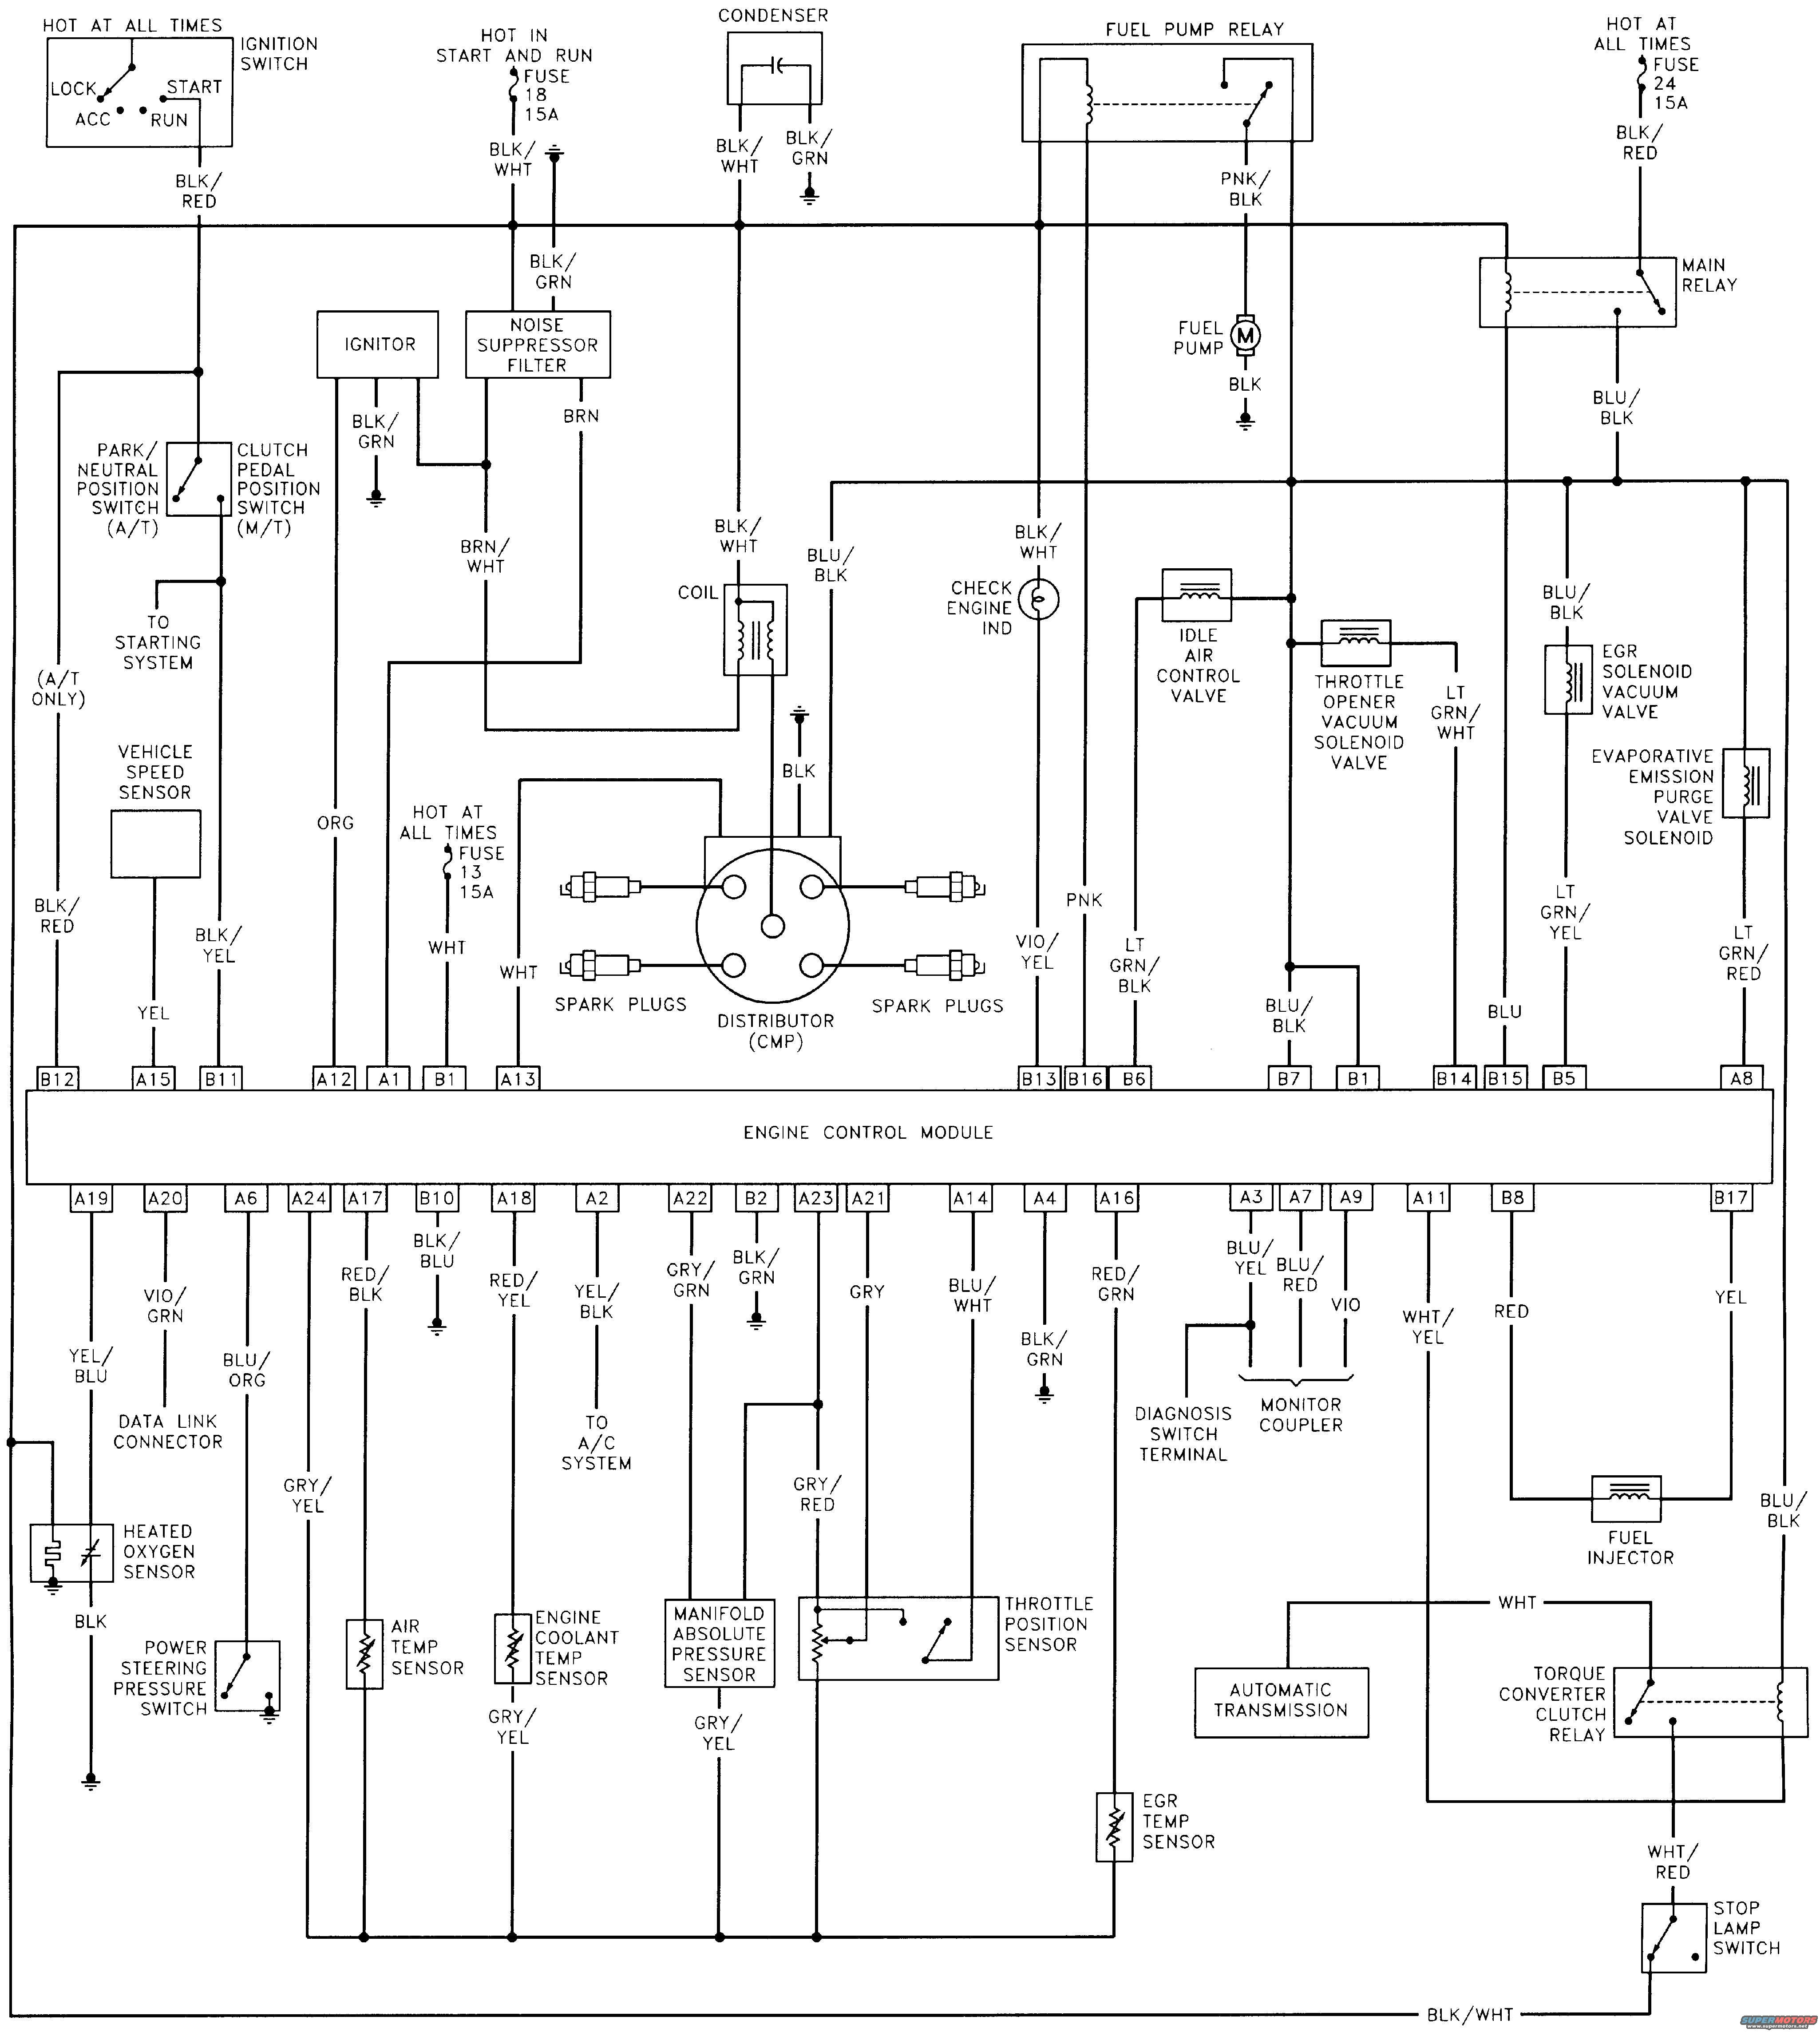 Suzuki Sidekick Wiring Harness List Of Schematic Circuit Diagram \u2022  Kenworth Wiring Harness Suzuki Sidekick Wiring Harness